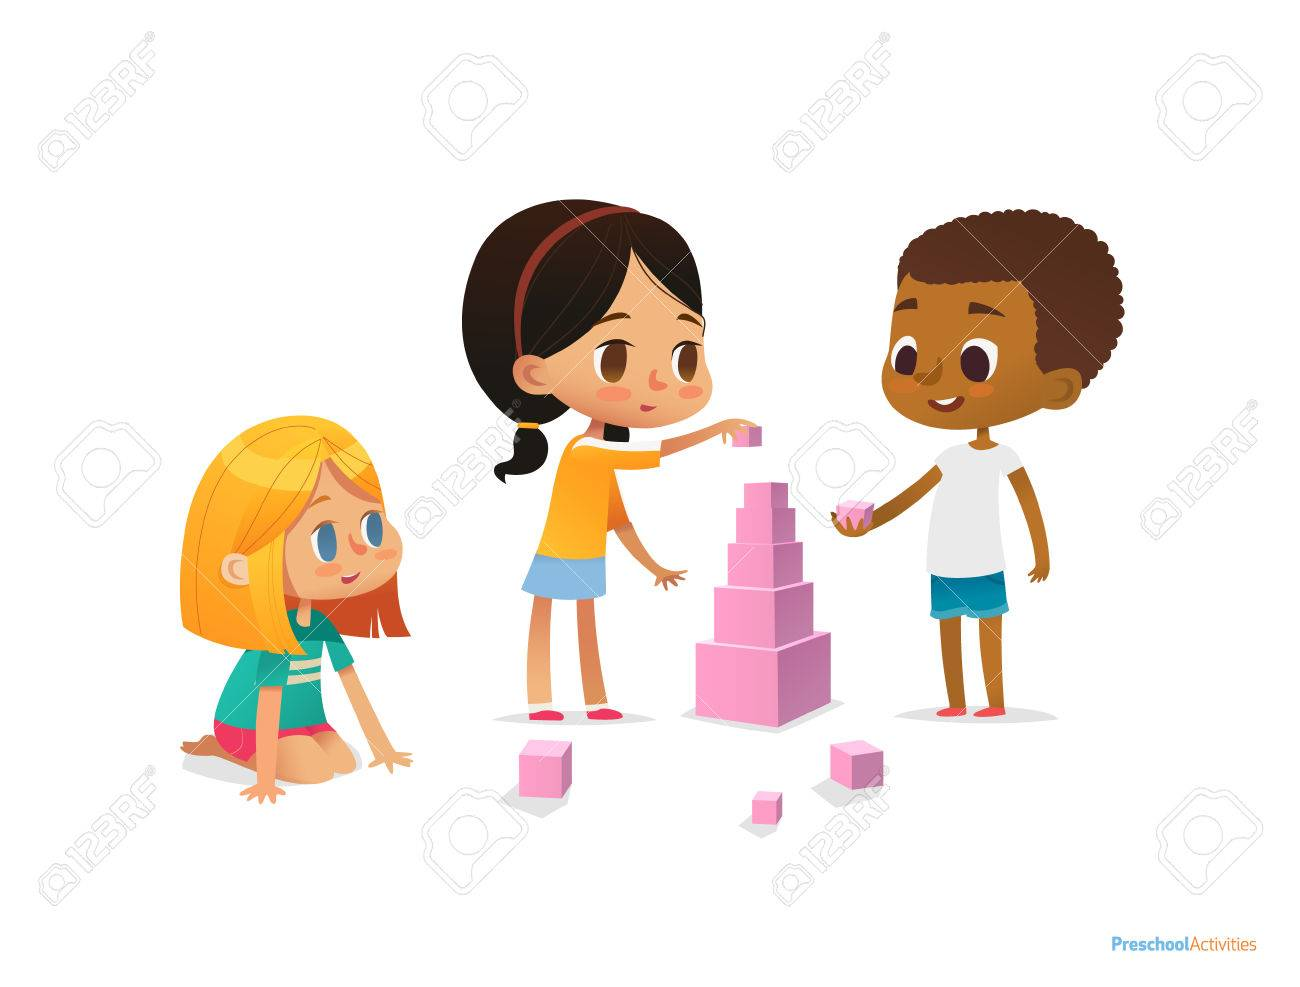 Multiracial children build tower with pink blocks. Kids play using kit with bright colored cubes. Montessori materials concept. Vector illustration for poster, banner, website, flyer, advertisement - 77925540